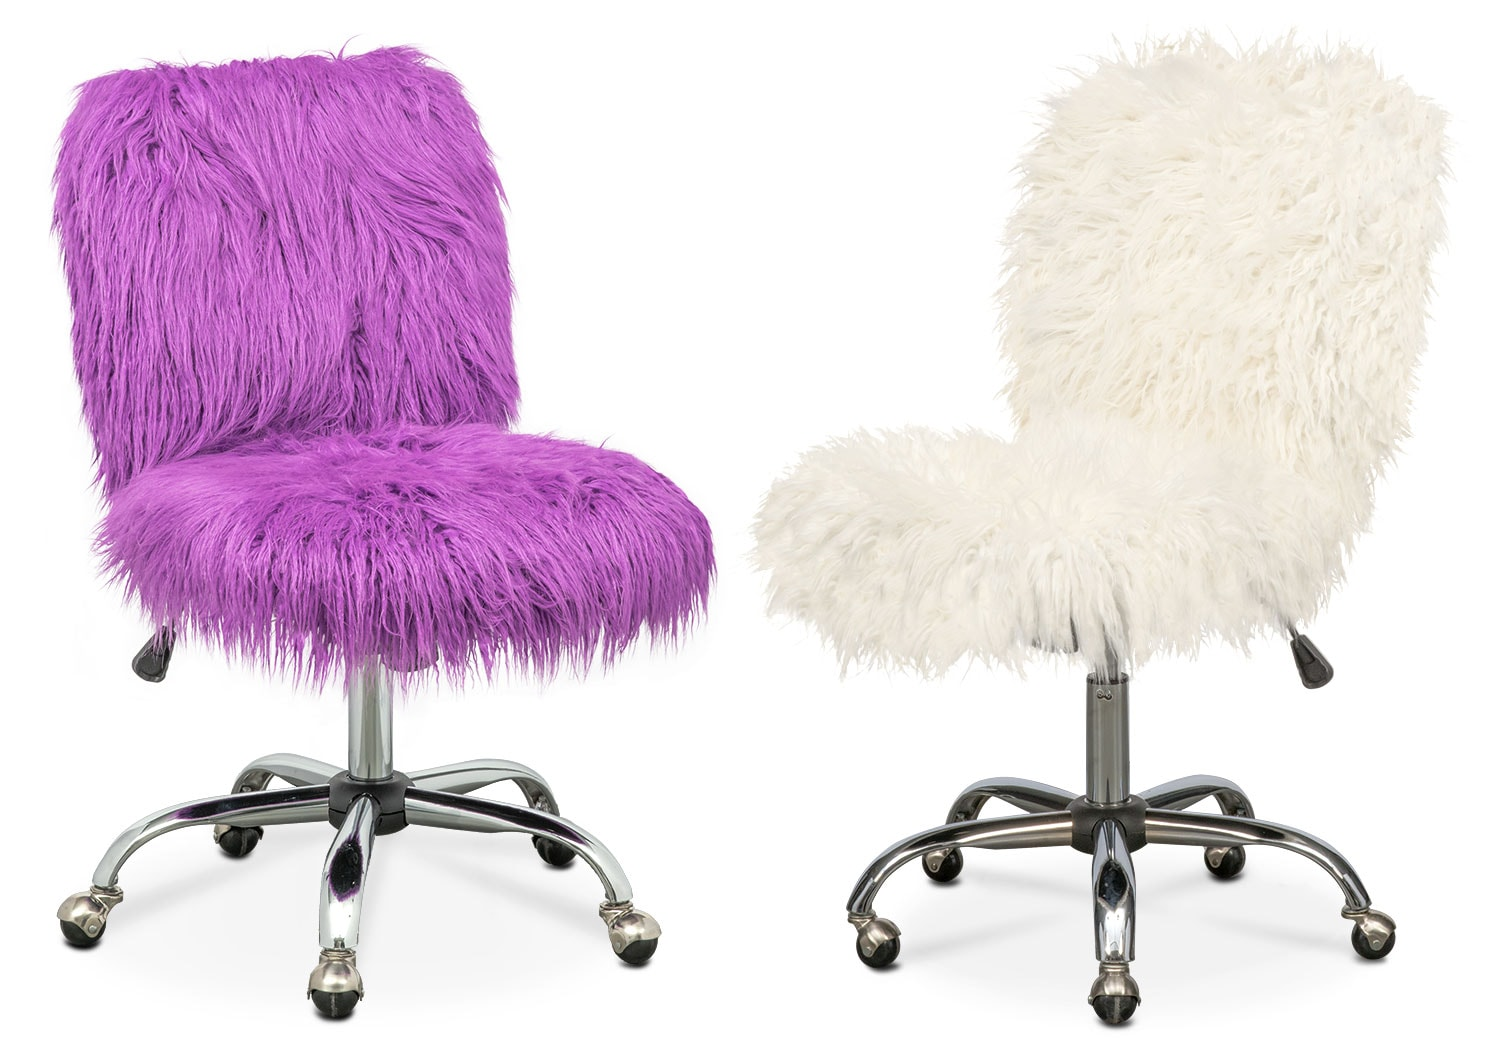 Furry Chairs The Frenzy Collection American Signature Furniture